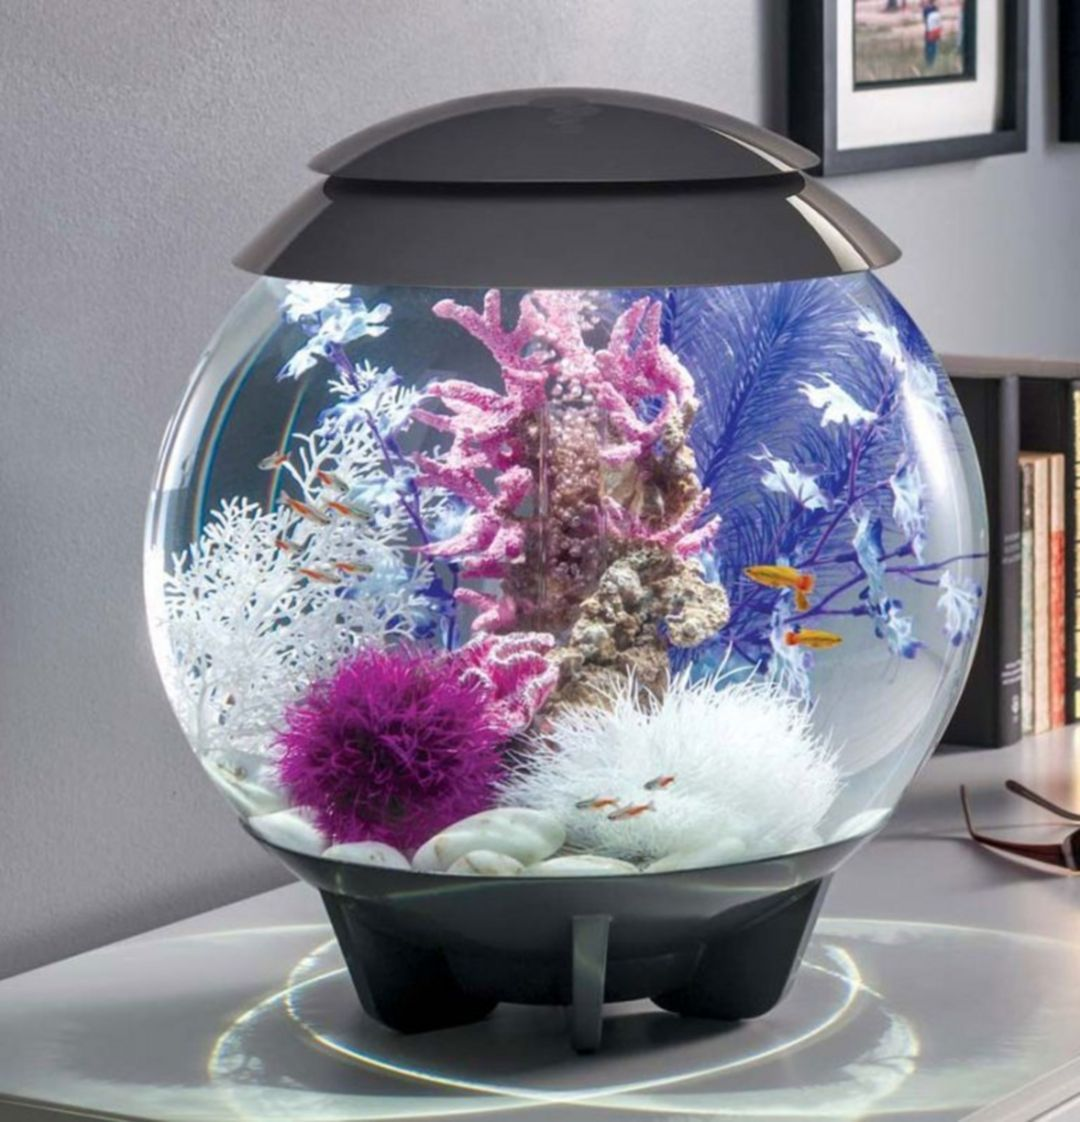 Home Aquarium Design Ideas: 15 Unique Minimalist Ornamental Fish Aquarium Designs For